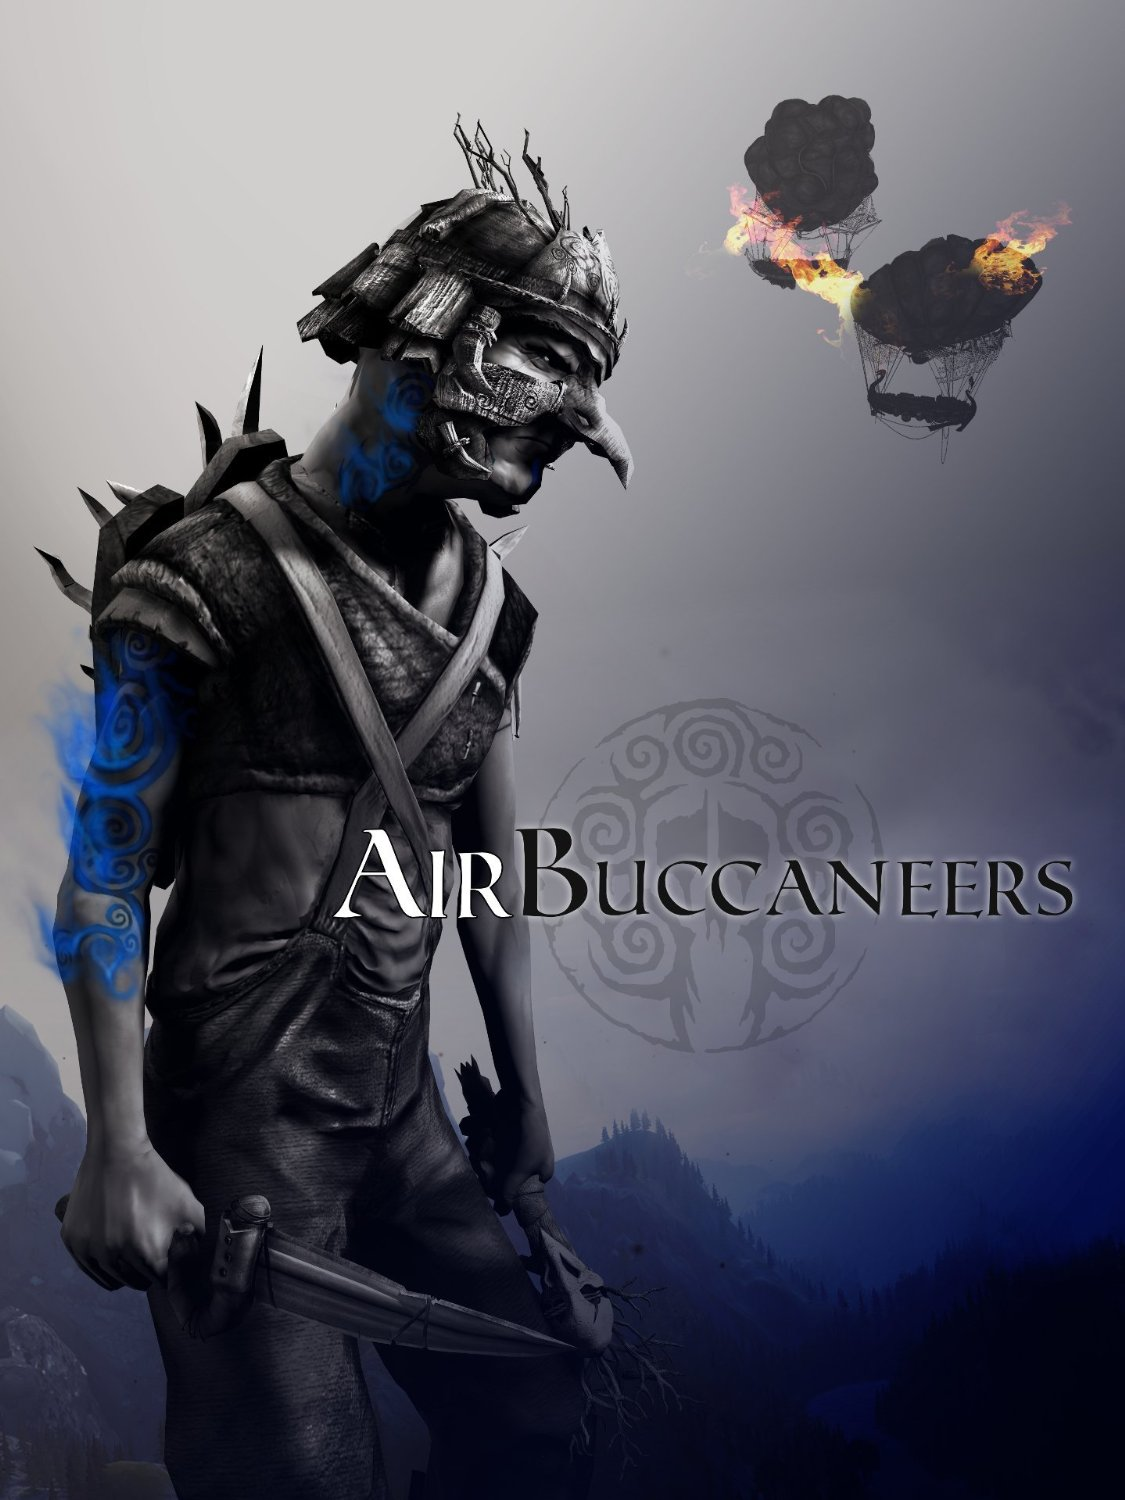 AirBuccaneers (Steam Key / Region Free) + Bonus